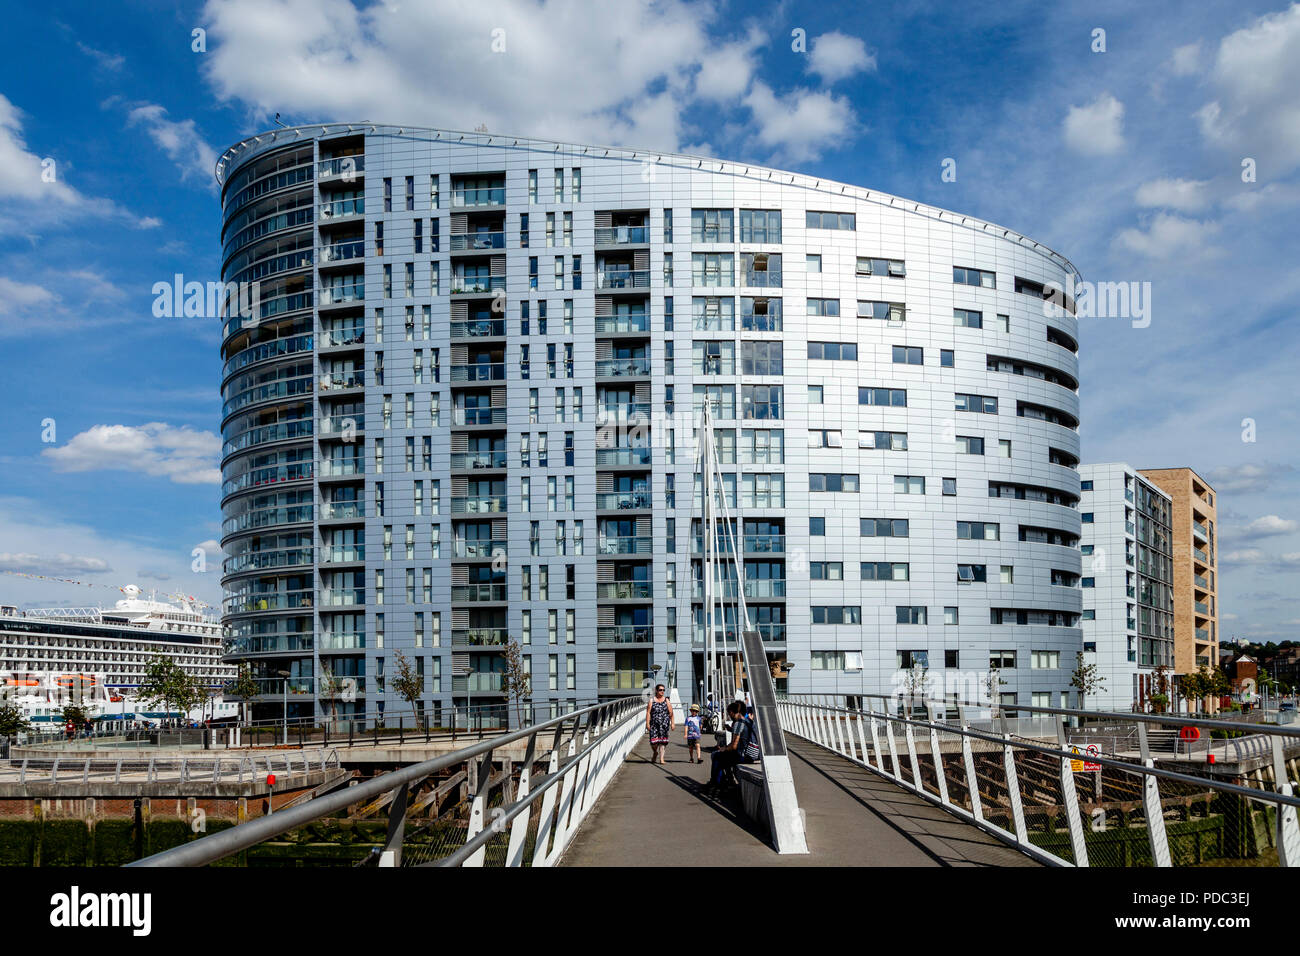 New Capital Quay Apartment Building, Greenwich, London, UK - Stock Image